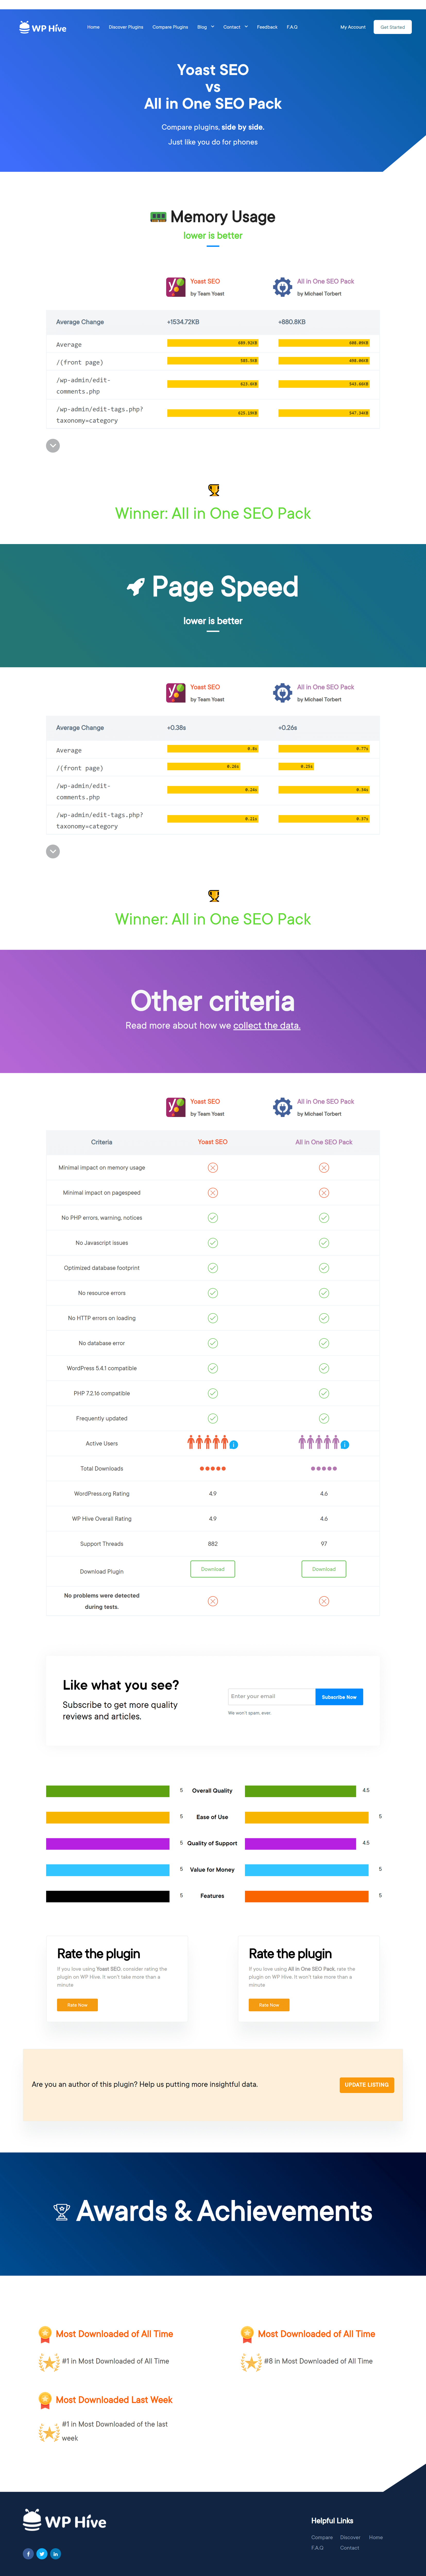 comparison yoast and all in one